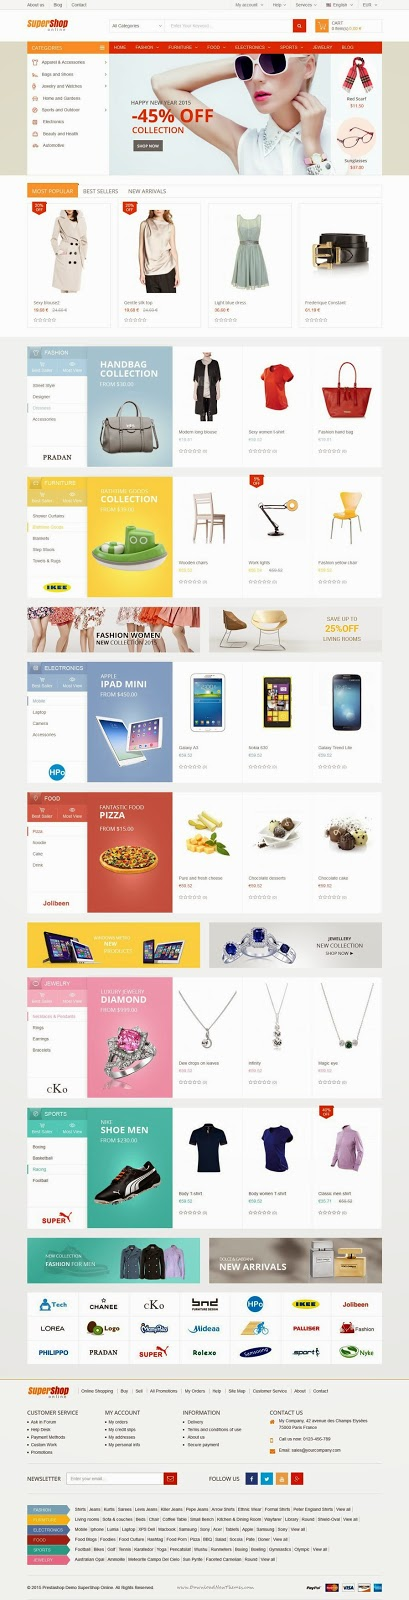 Best Responsive Multipurpose Prestashop Theme 2015